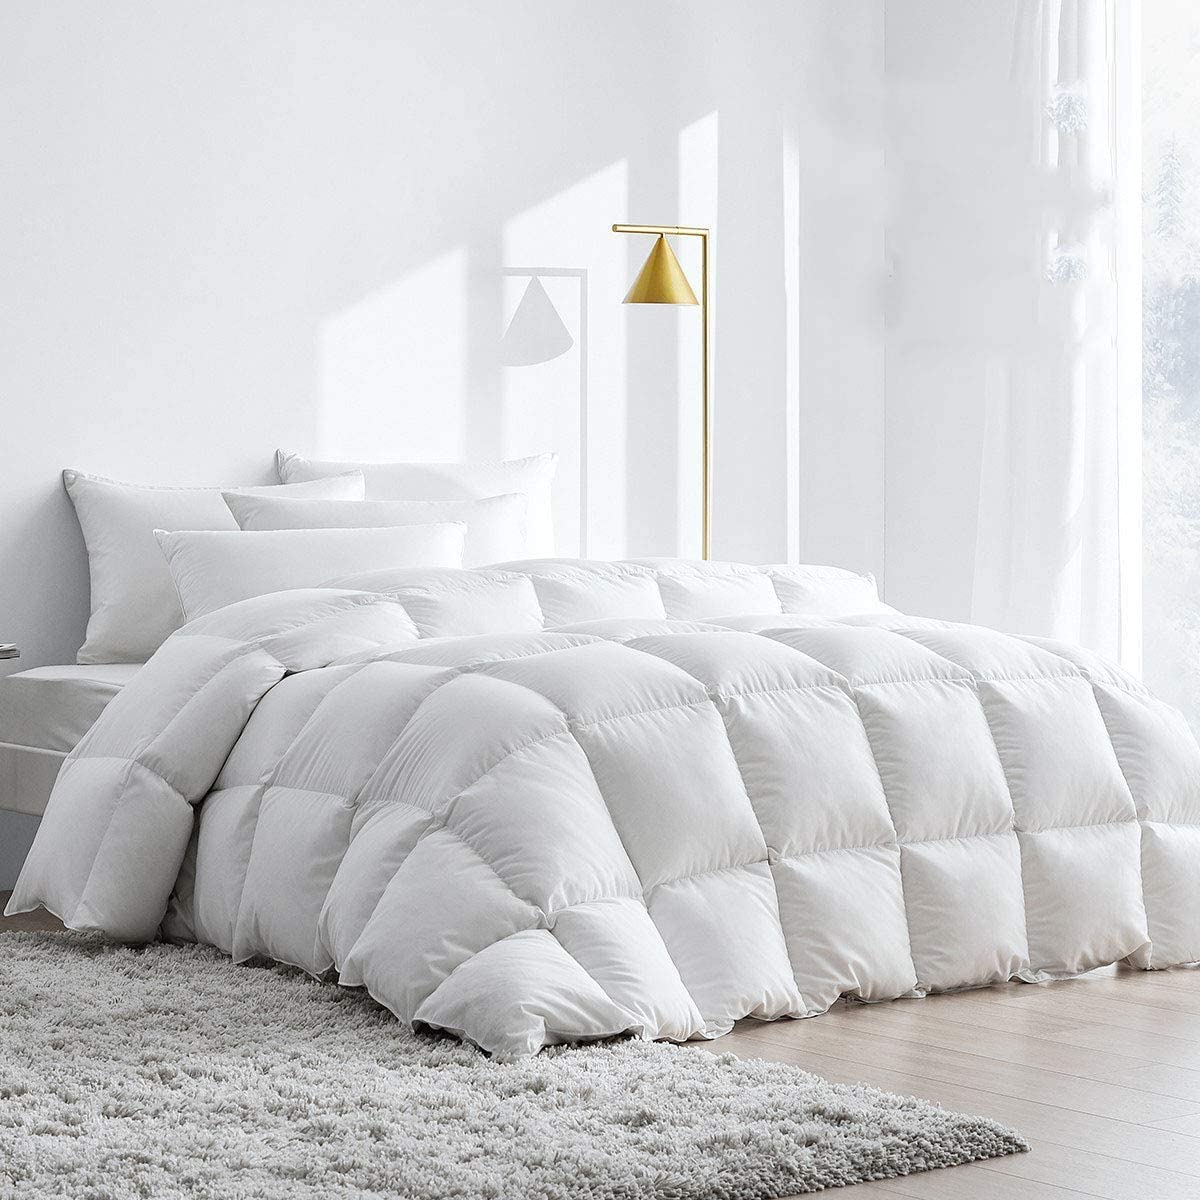 XCW 5% Bamboo Fiber Blend Comforter,Ultra Soft Brushed Microfiber, Quilt with Corner Tab for All Season Hypoallergenic Plush Microfiber Comforter Duvet Insert- Queen 90 by 90 Inch : Home & Kitchen